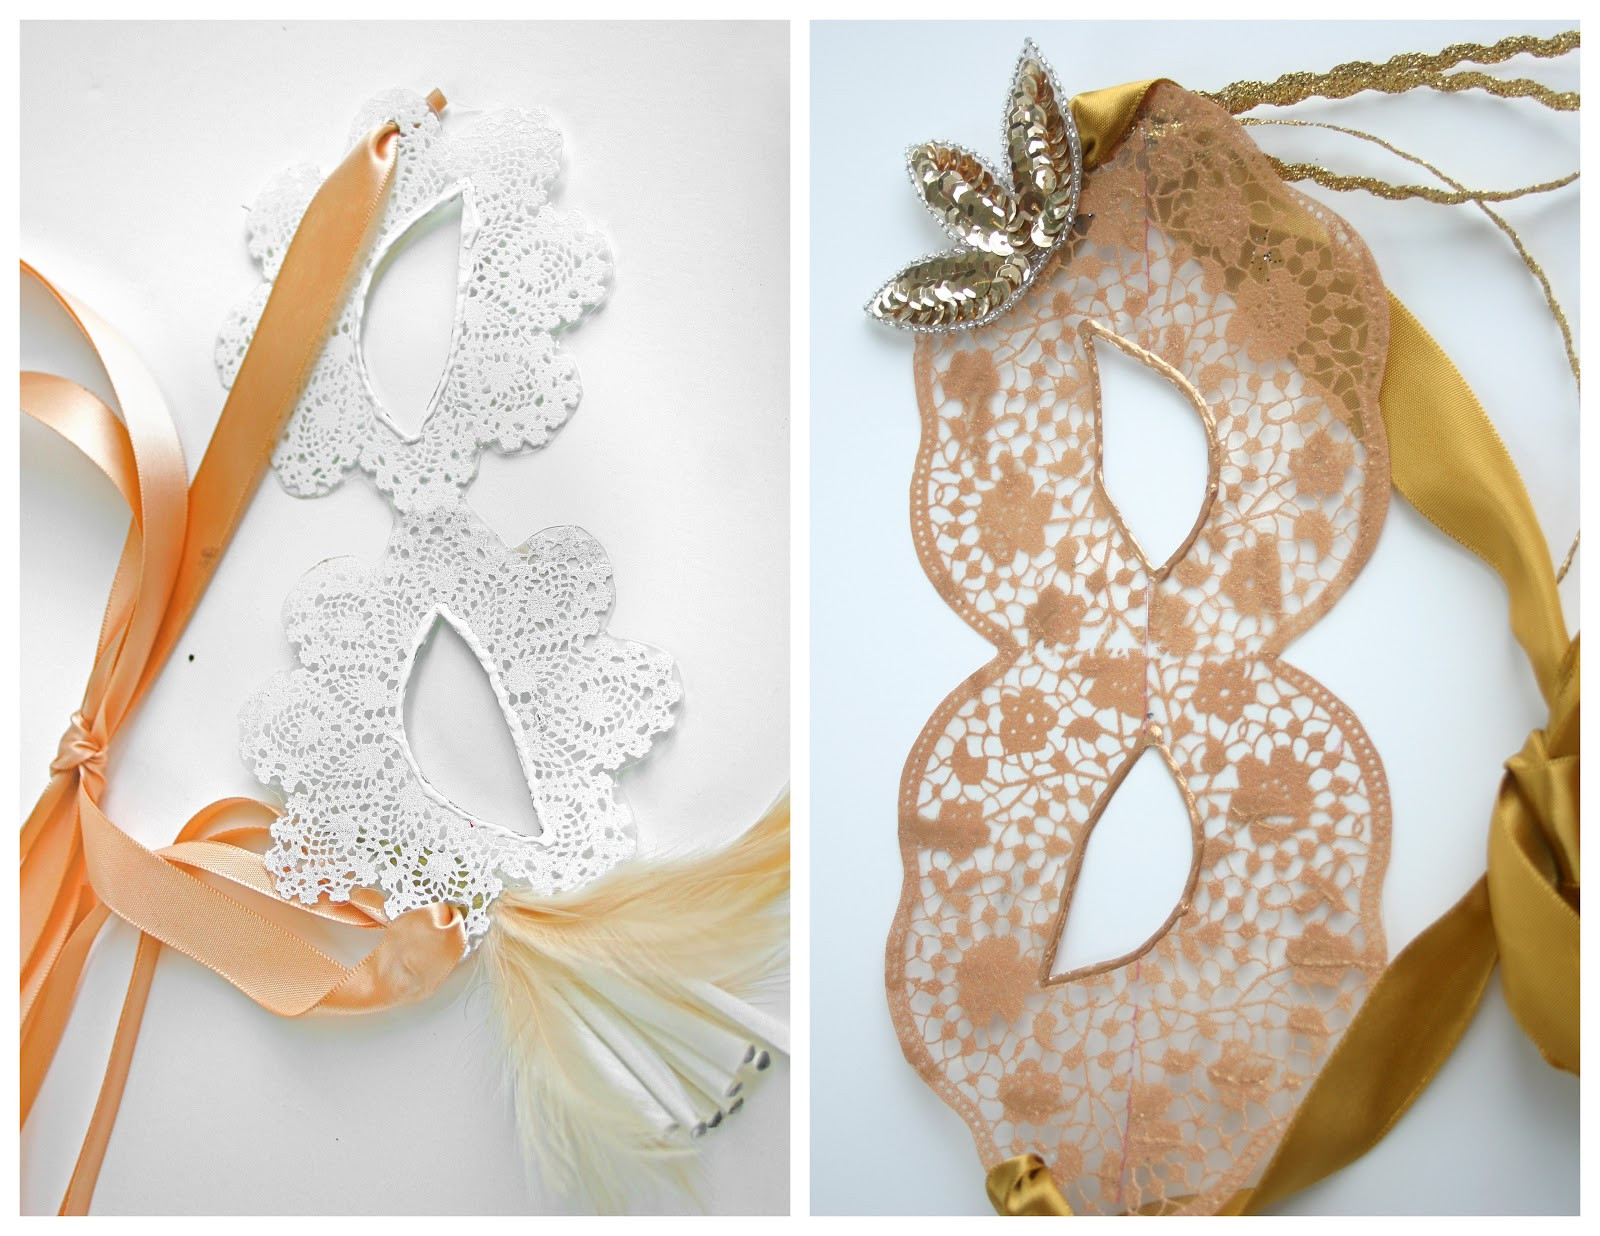 Best ideas about Masquerade Masks DIY . Save or Pin Grosgrain DIY Paintable Faux Lace Masquerade Masks Now.